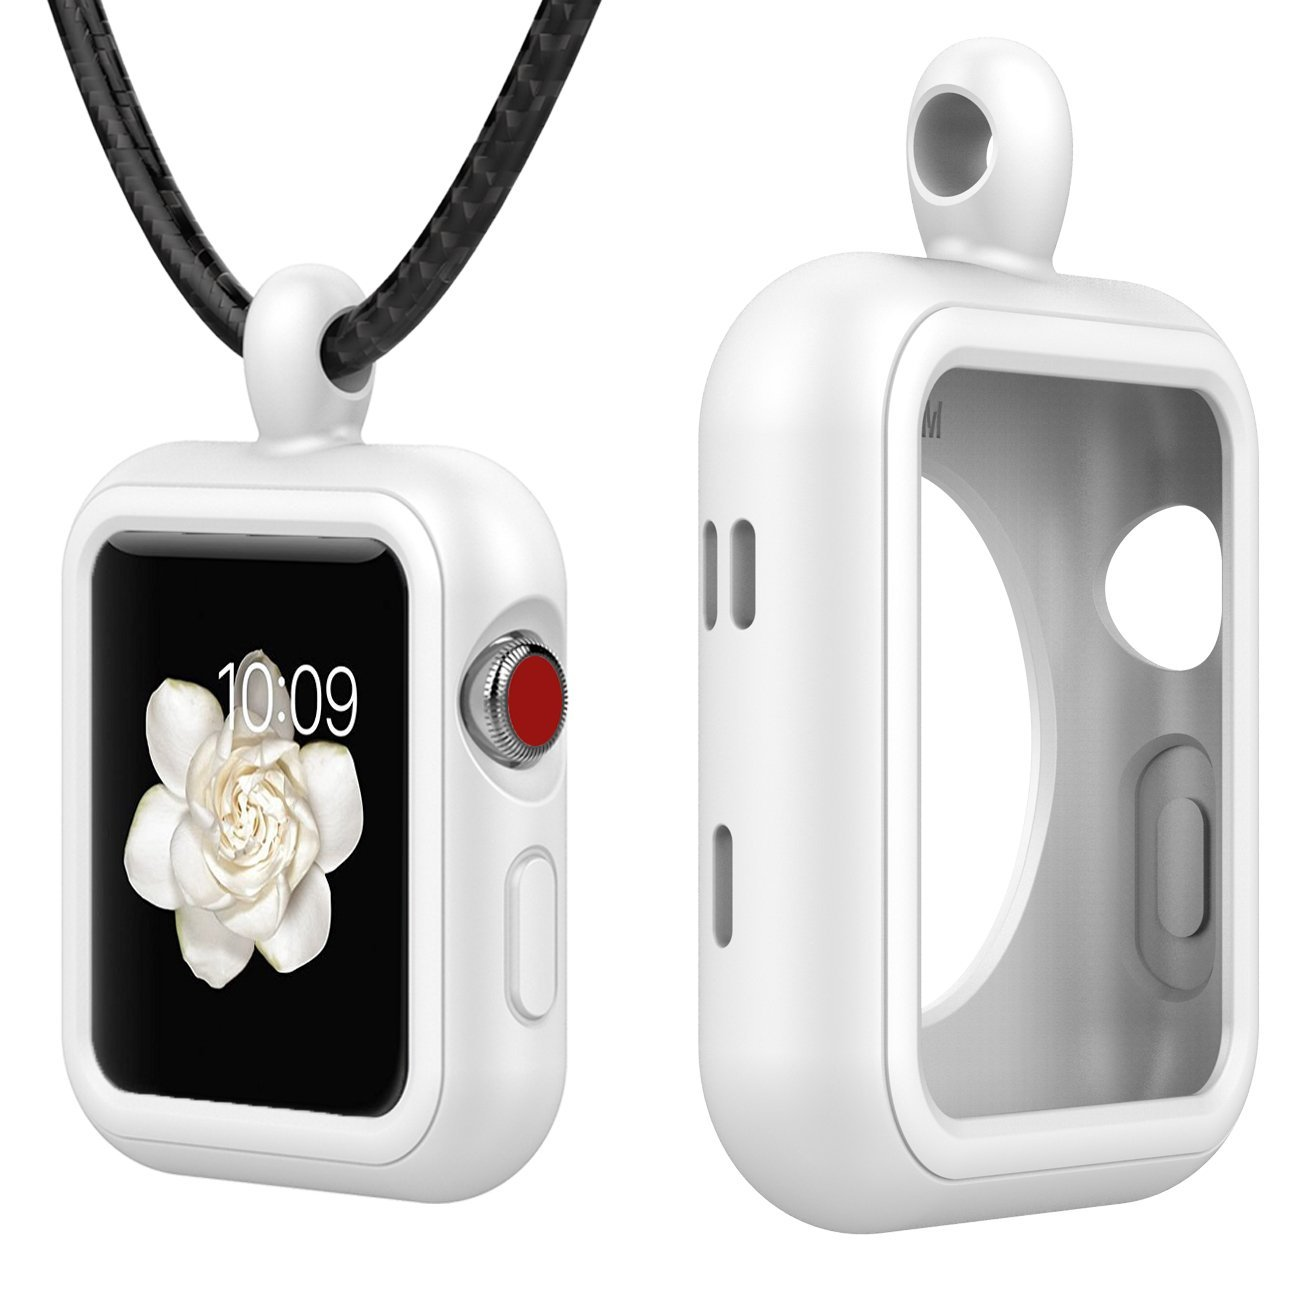 Moretek Apple Watch Accessories Necklace Pendant Case Cover for Apple Watch 38MM Series 3 / 2 / 1 / Nike+ / Edition (38mm, White)